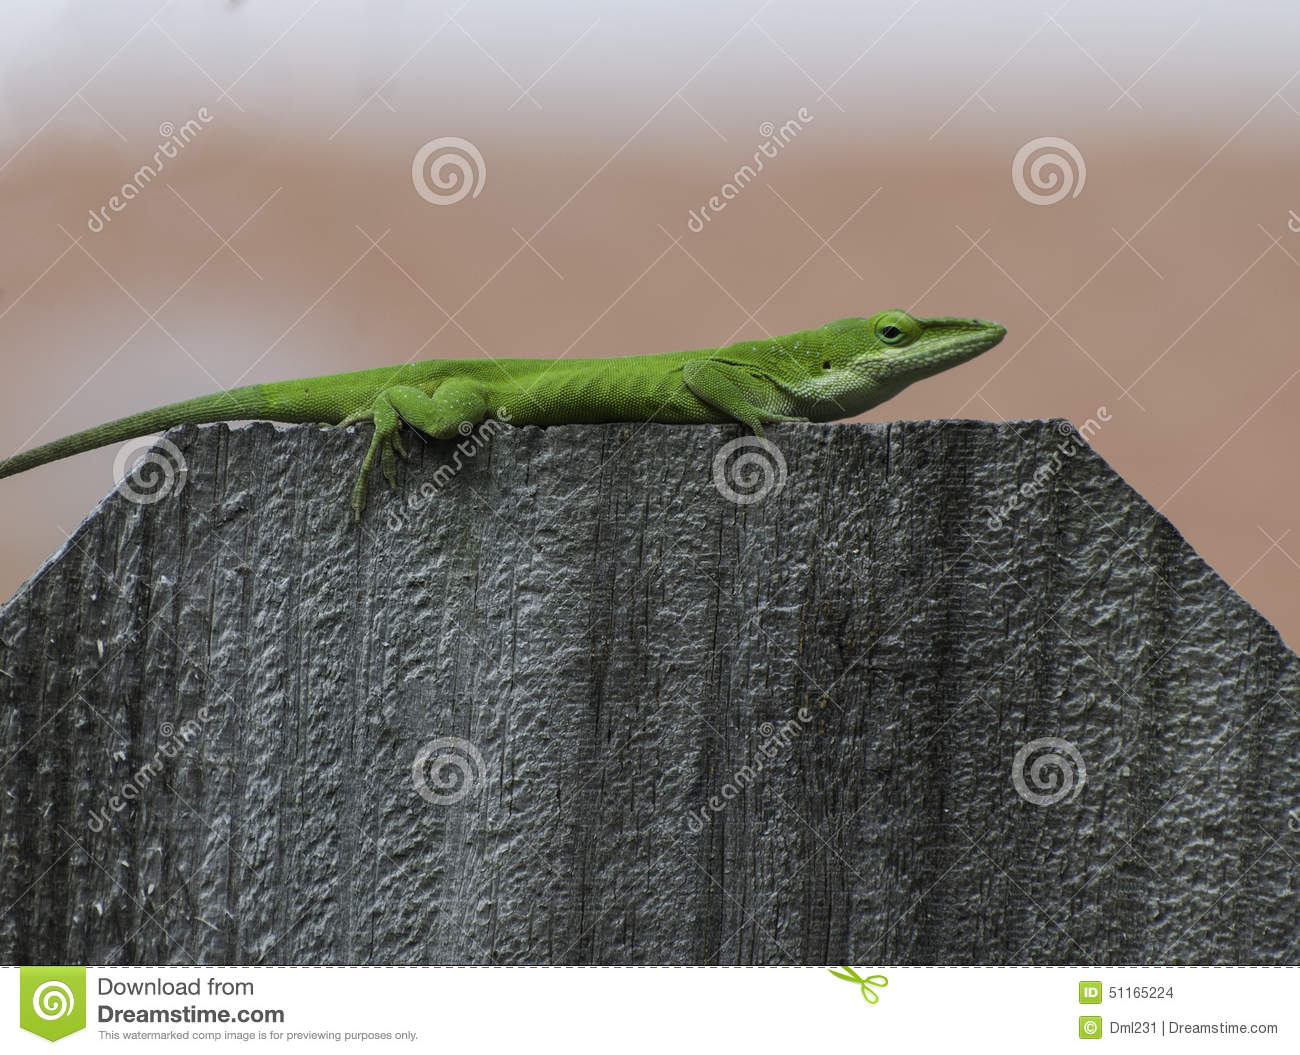 Green Anole on Fence